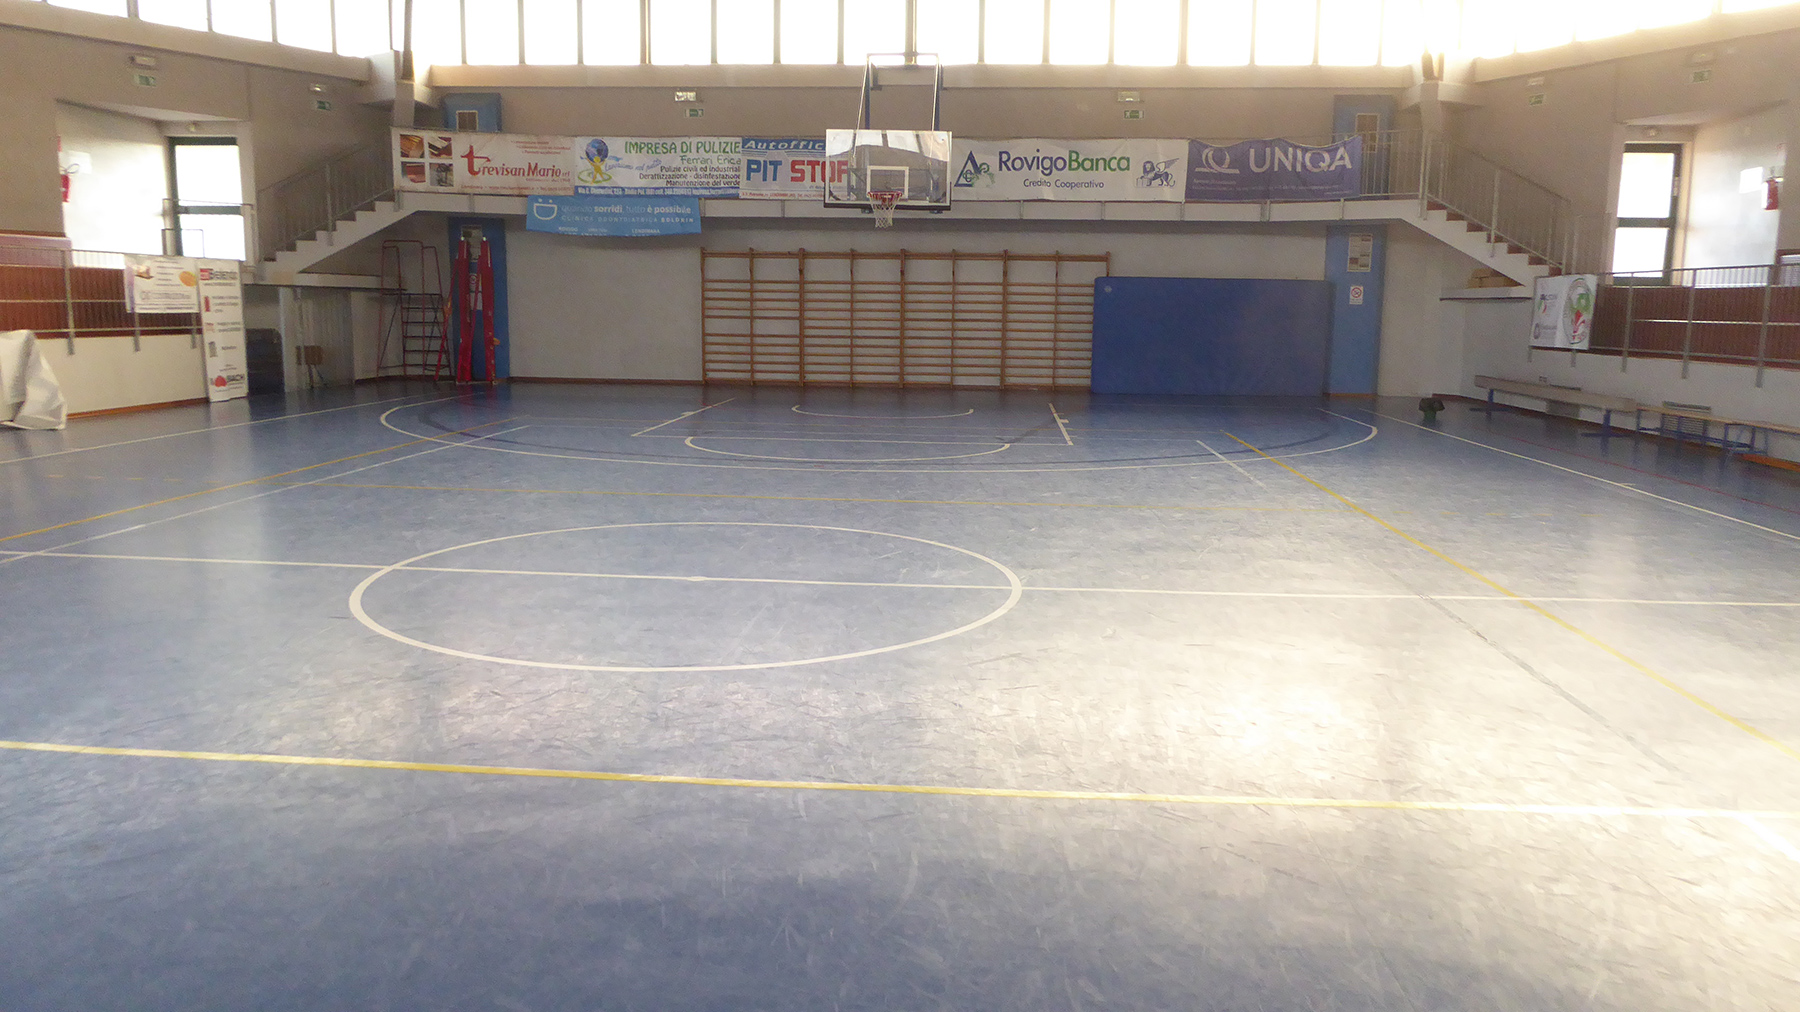 How the flooring presented itself before the intervention of Dalla Riva Sportfloors